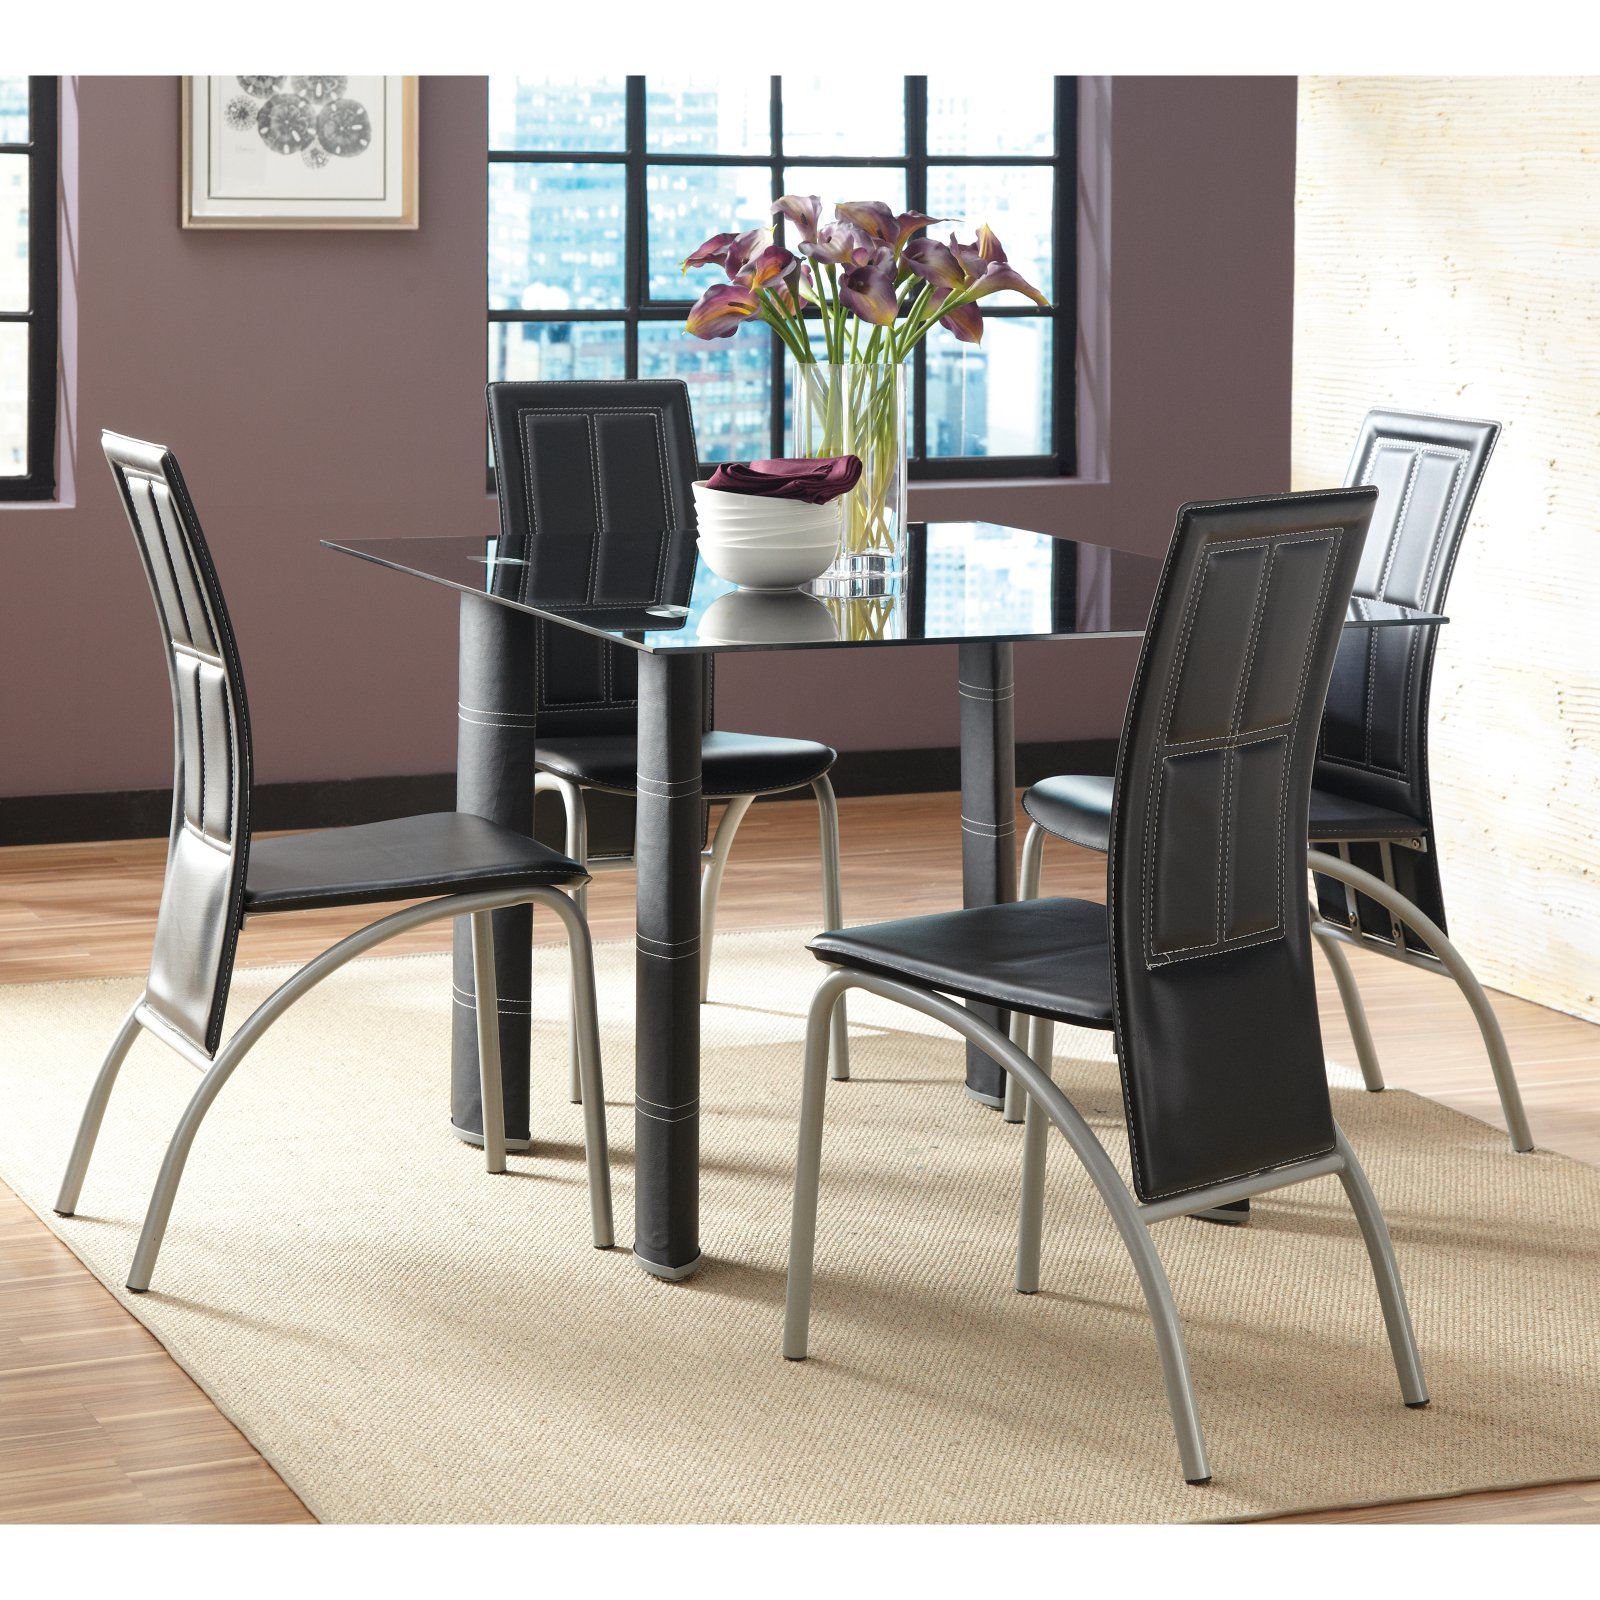 Steve Silver Calvin 5 Piece Glass Dining Table Set Black Walmartcom